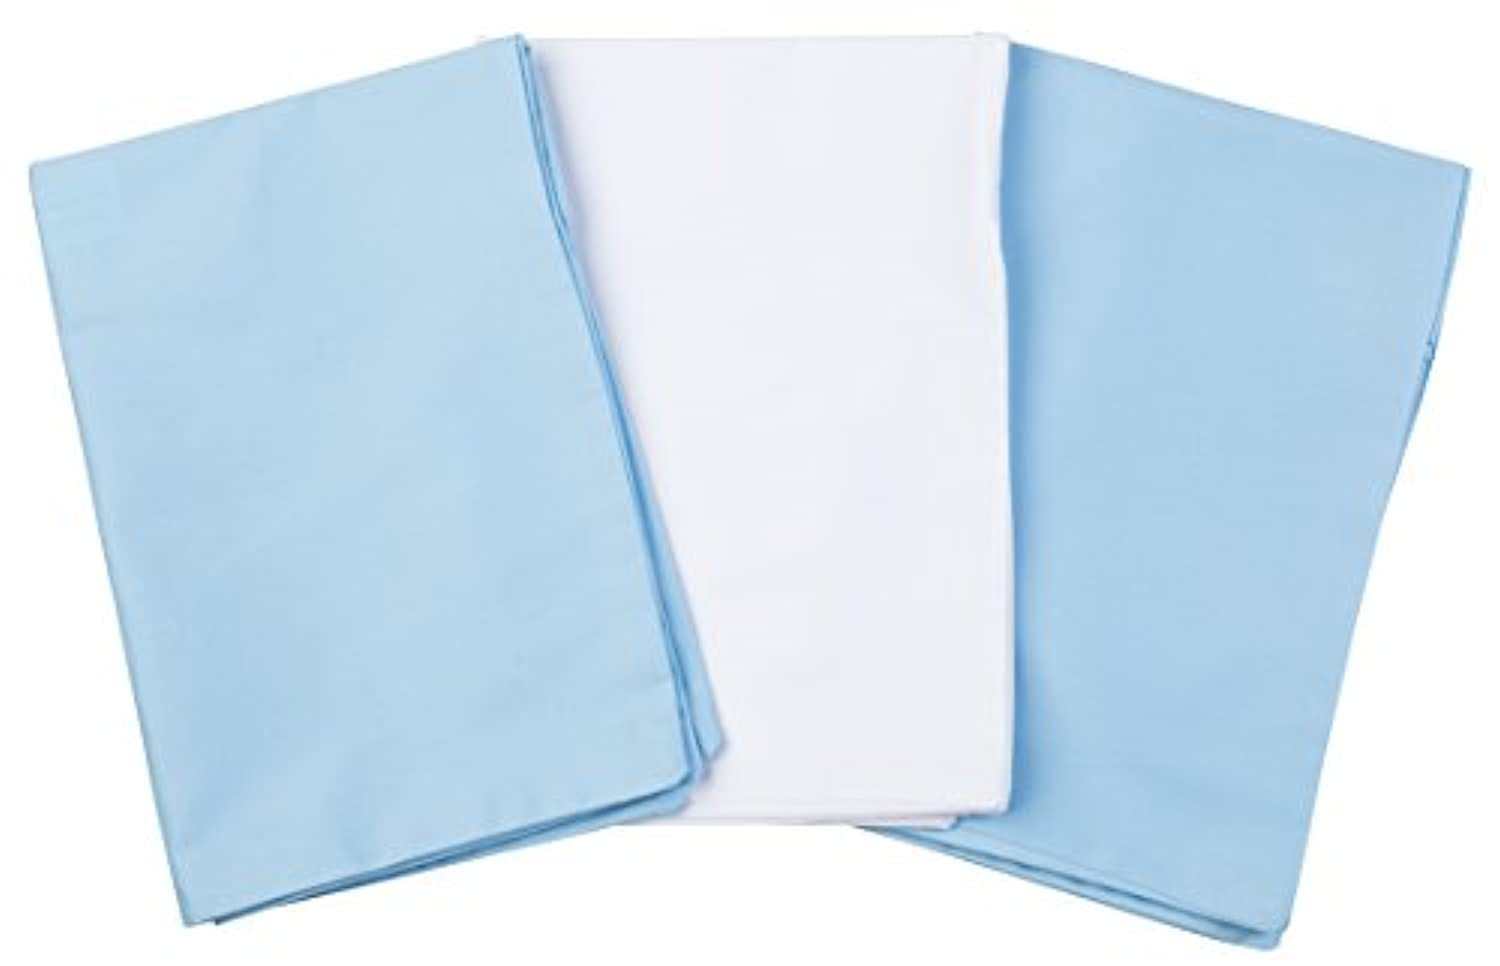 3 Toddler Pillowcases - 2 Blue and 1 White - Envelope Style - 13x18 - 100% Cotton With Soft Sateen Weave - Machine Washable by Zadisonjaxx